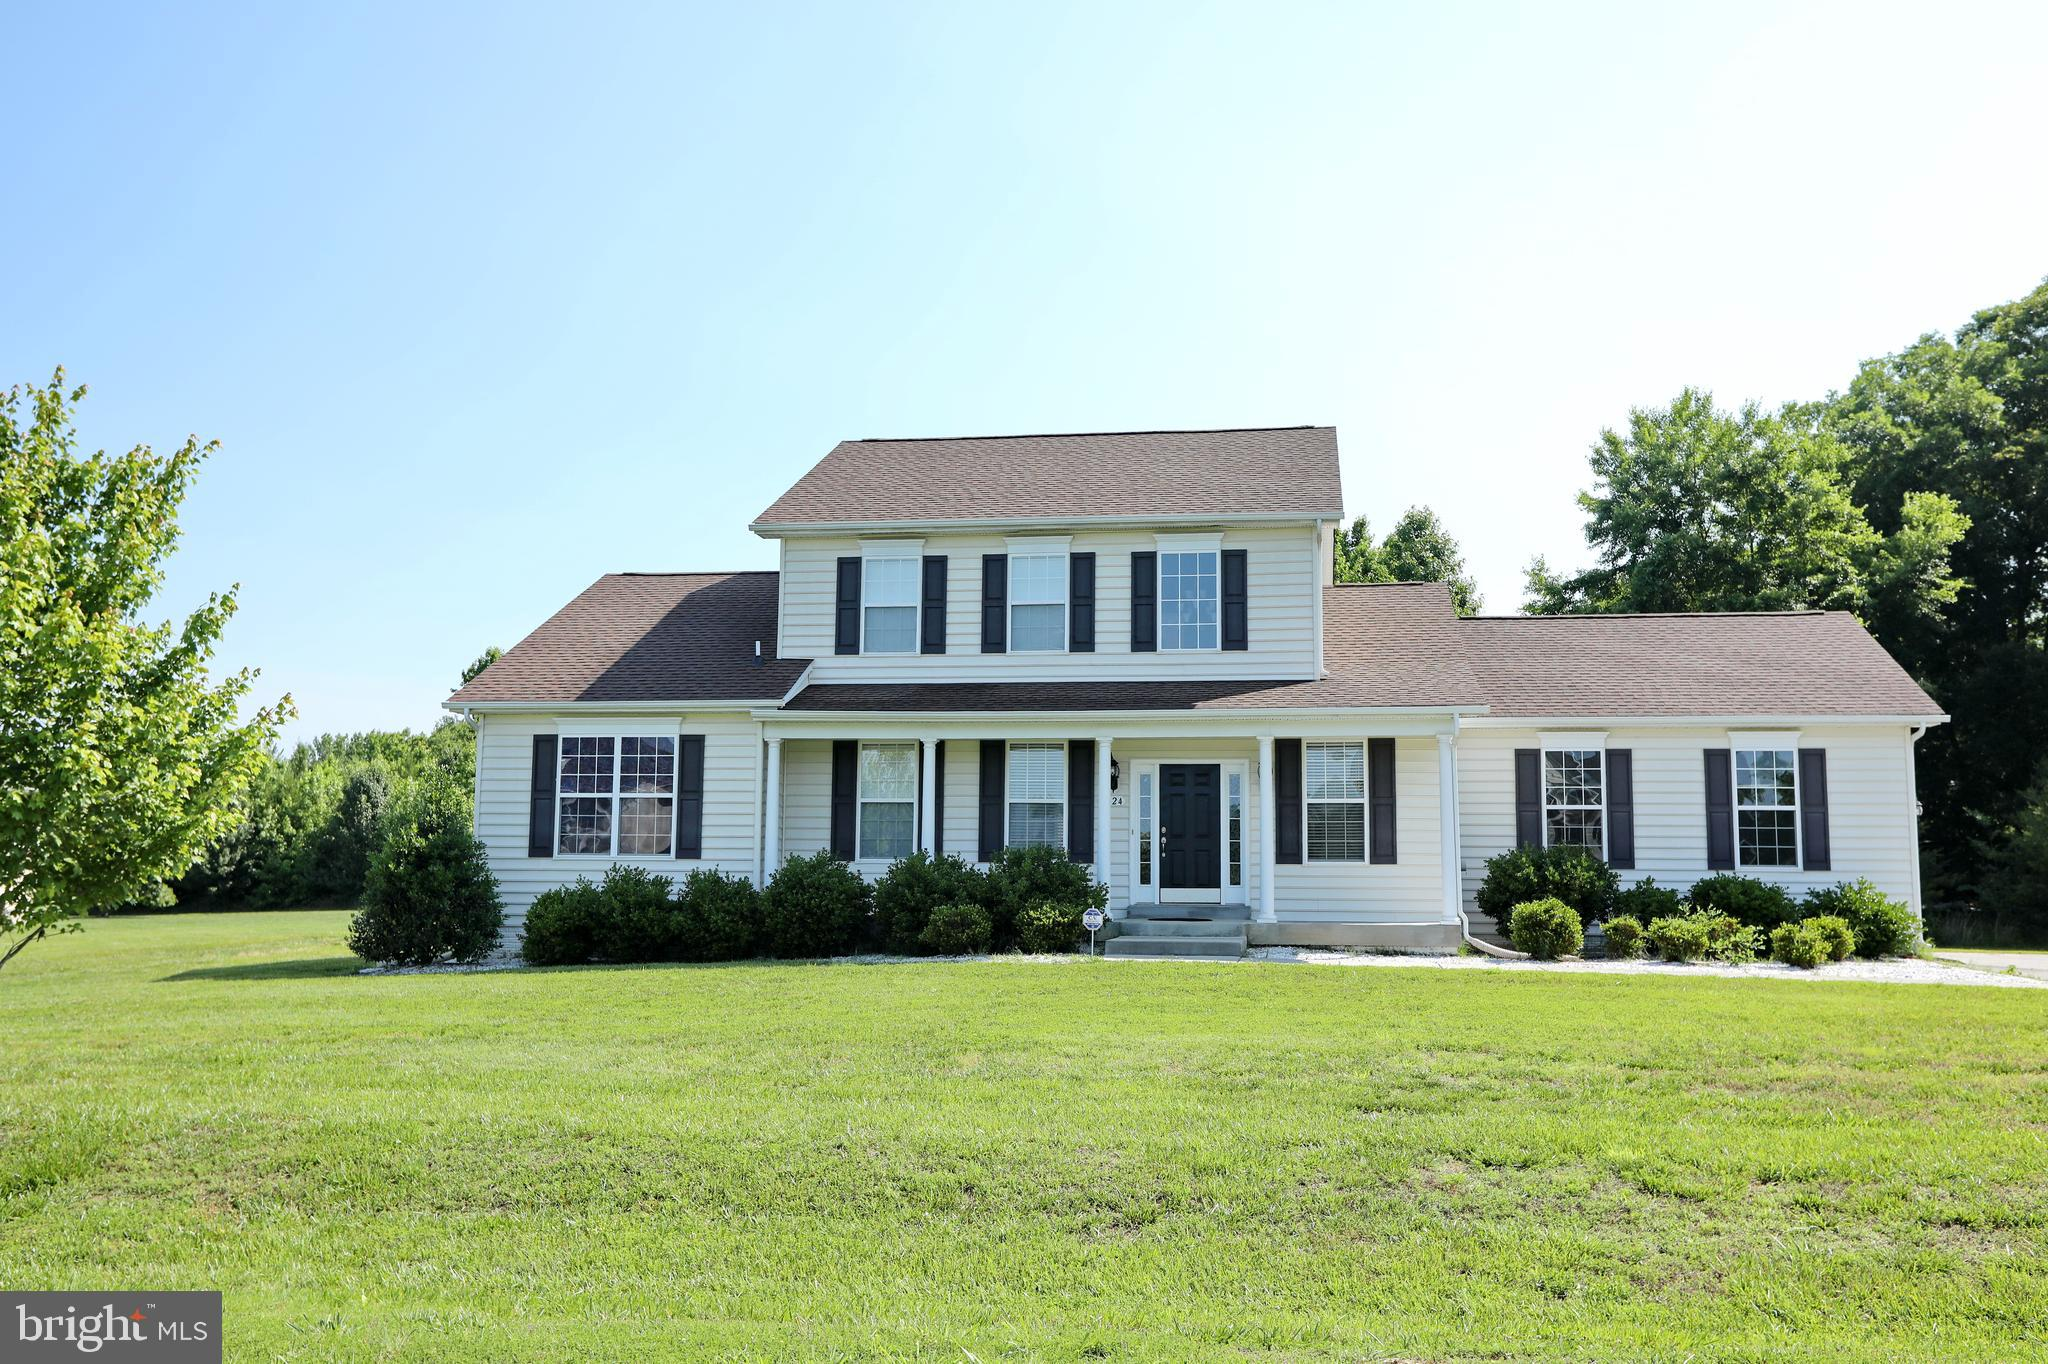 4424 PLEASANT HILL COURT, POMFRET, MD 20675